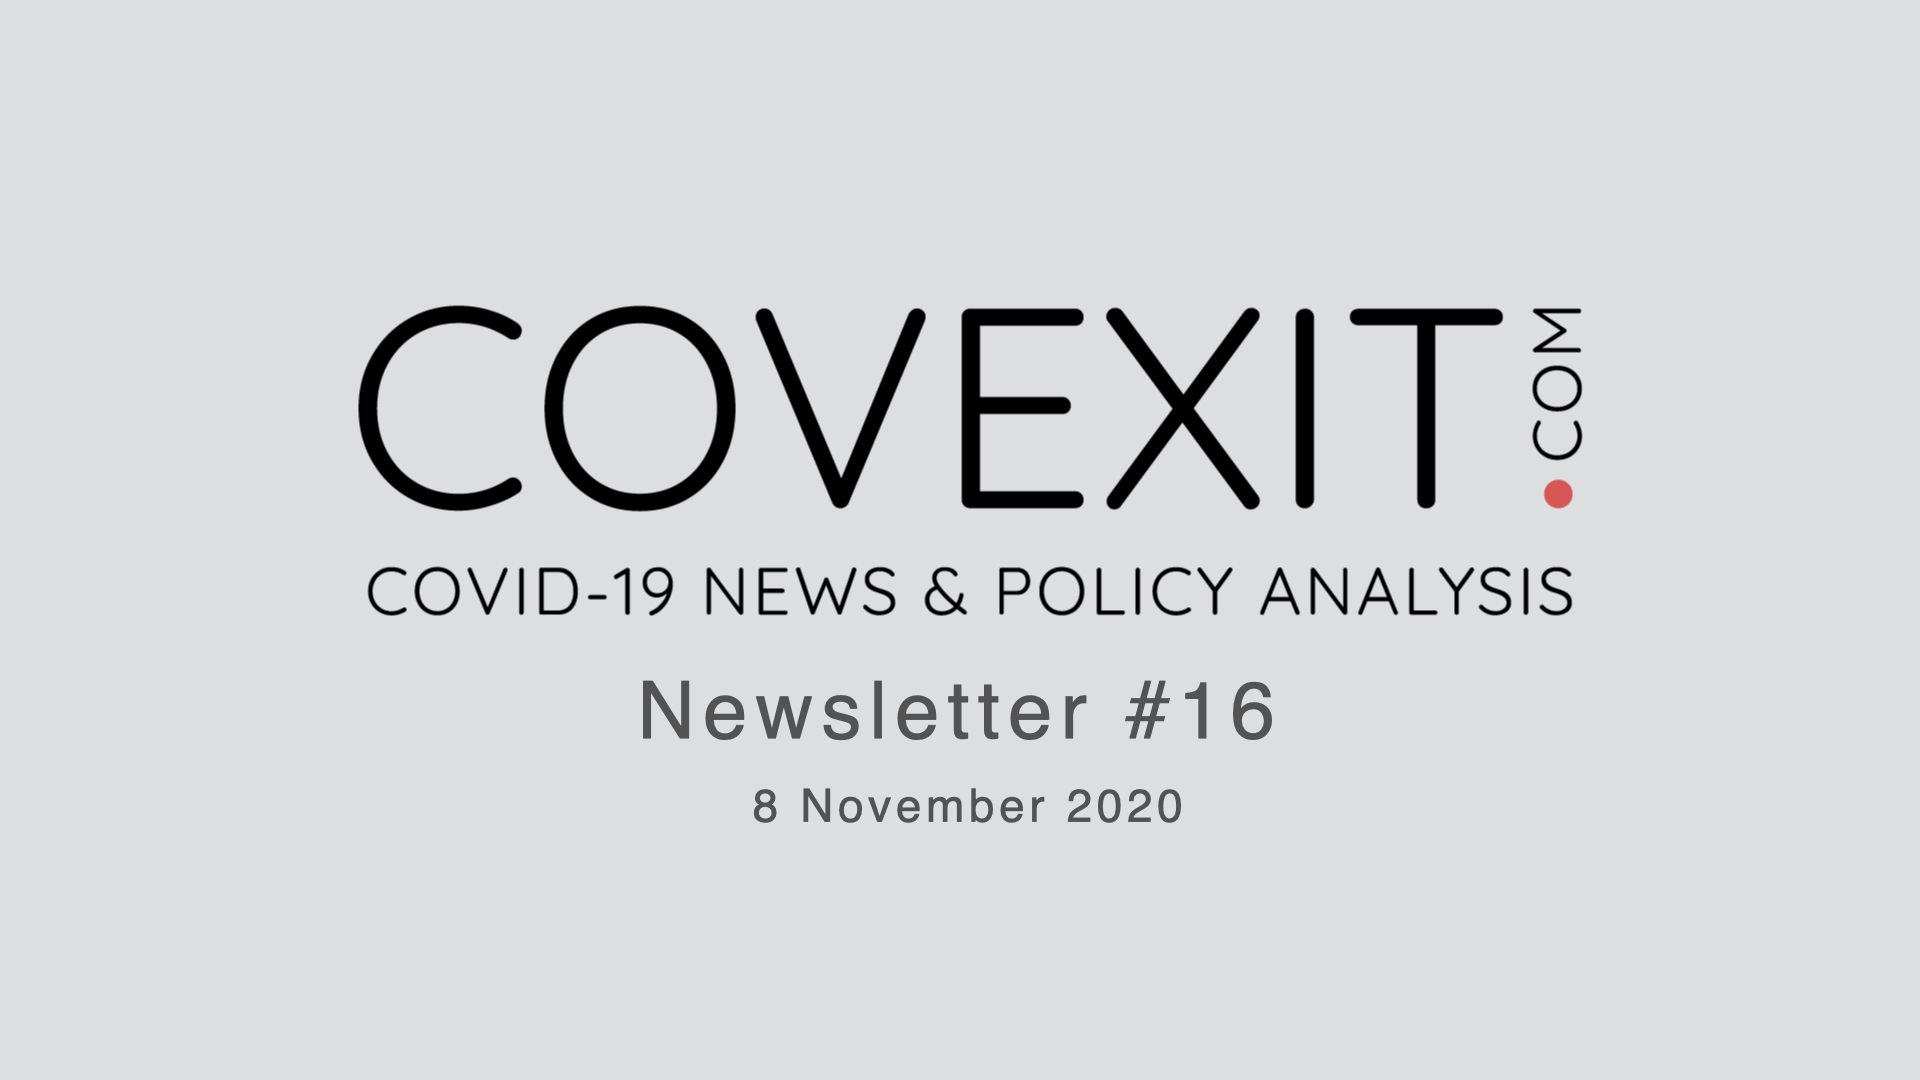 COVEXIT.com Newsletter #16